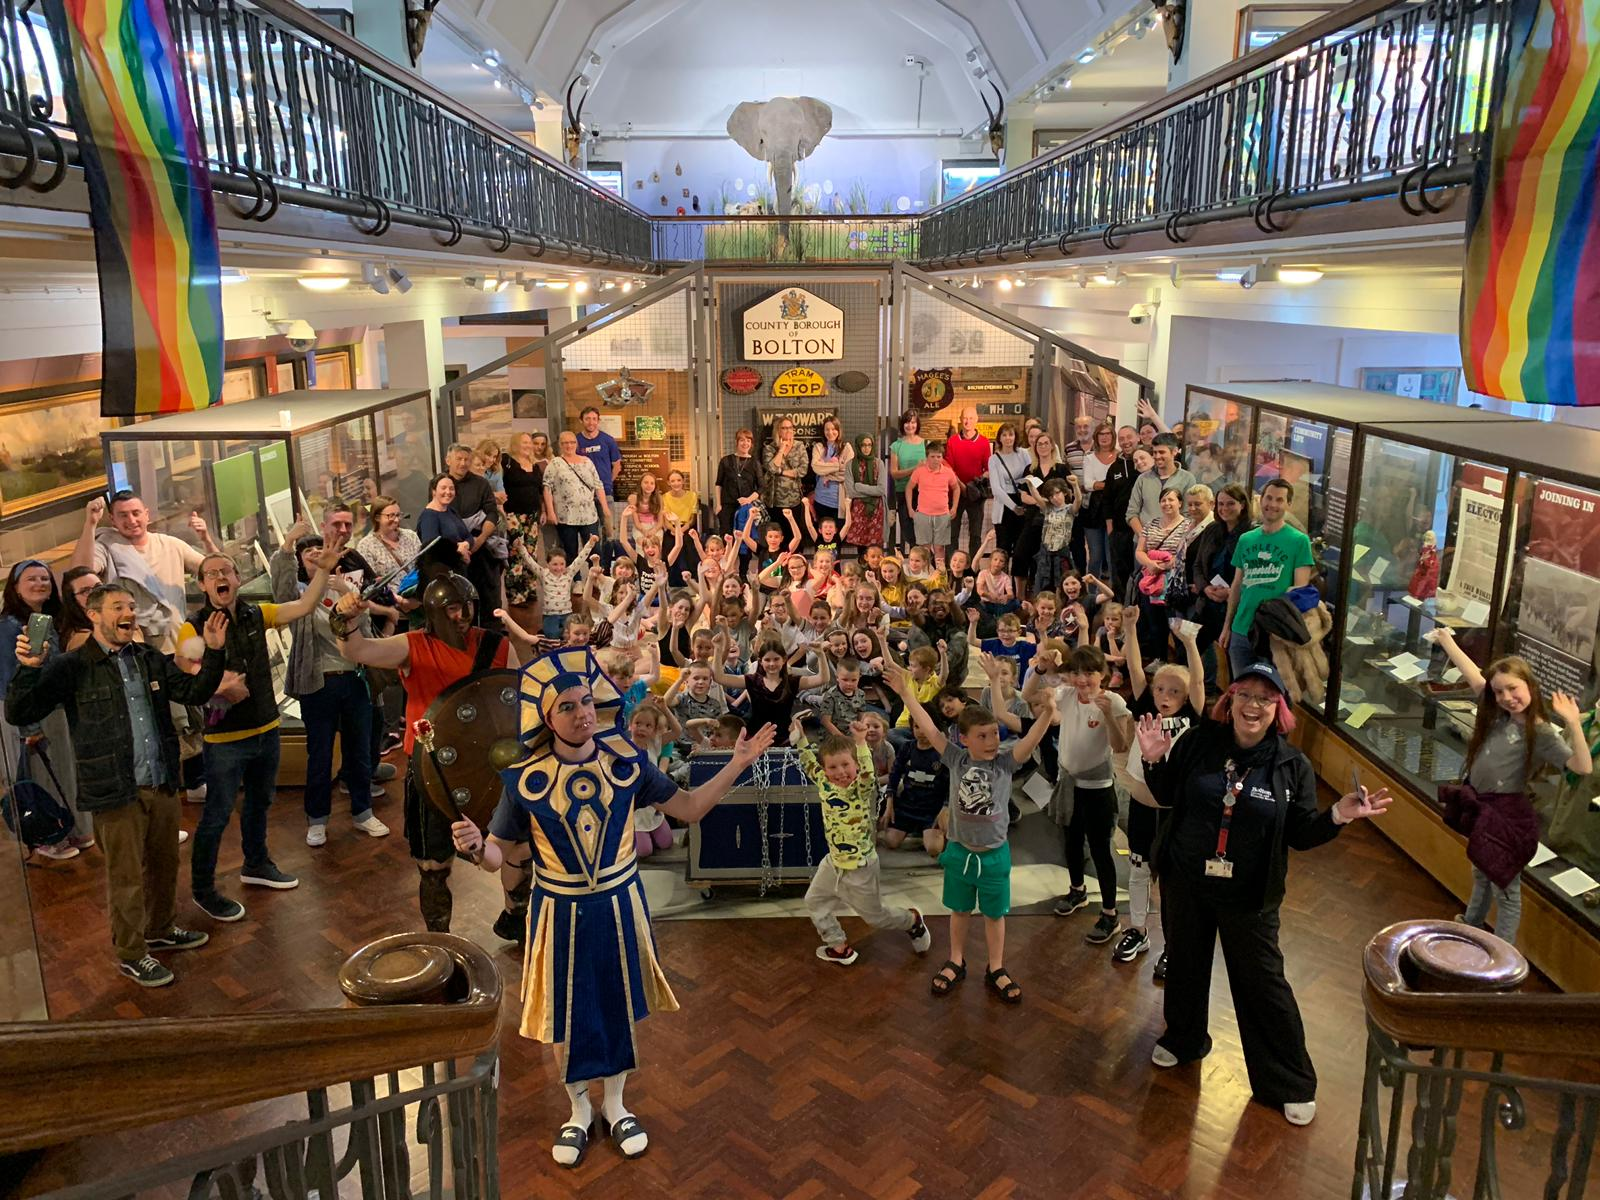 Members of staff and families at Bolton Museum and Art Gallery cheering and waving their arms in celebration.